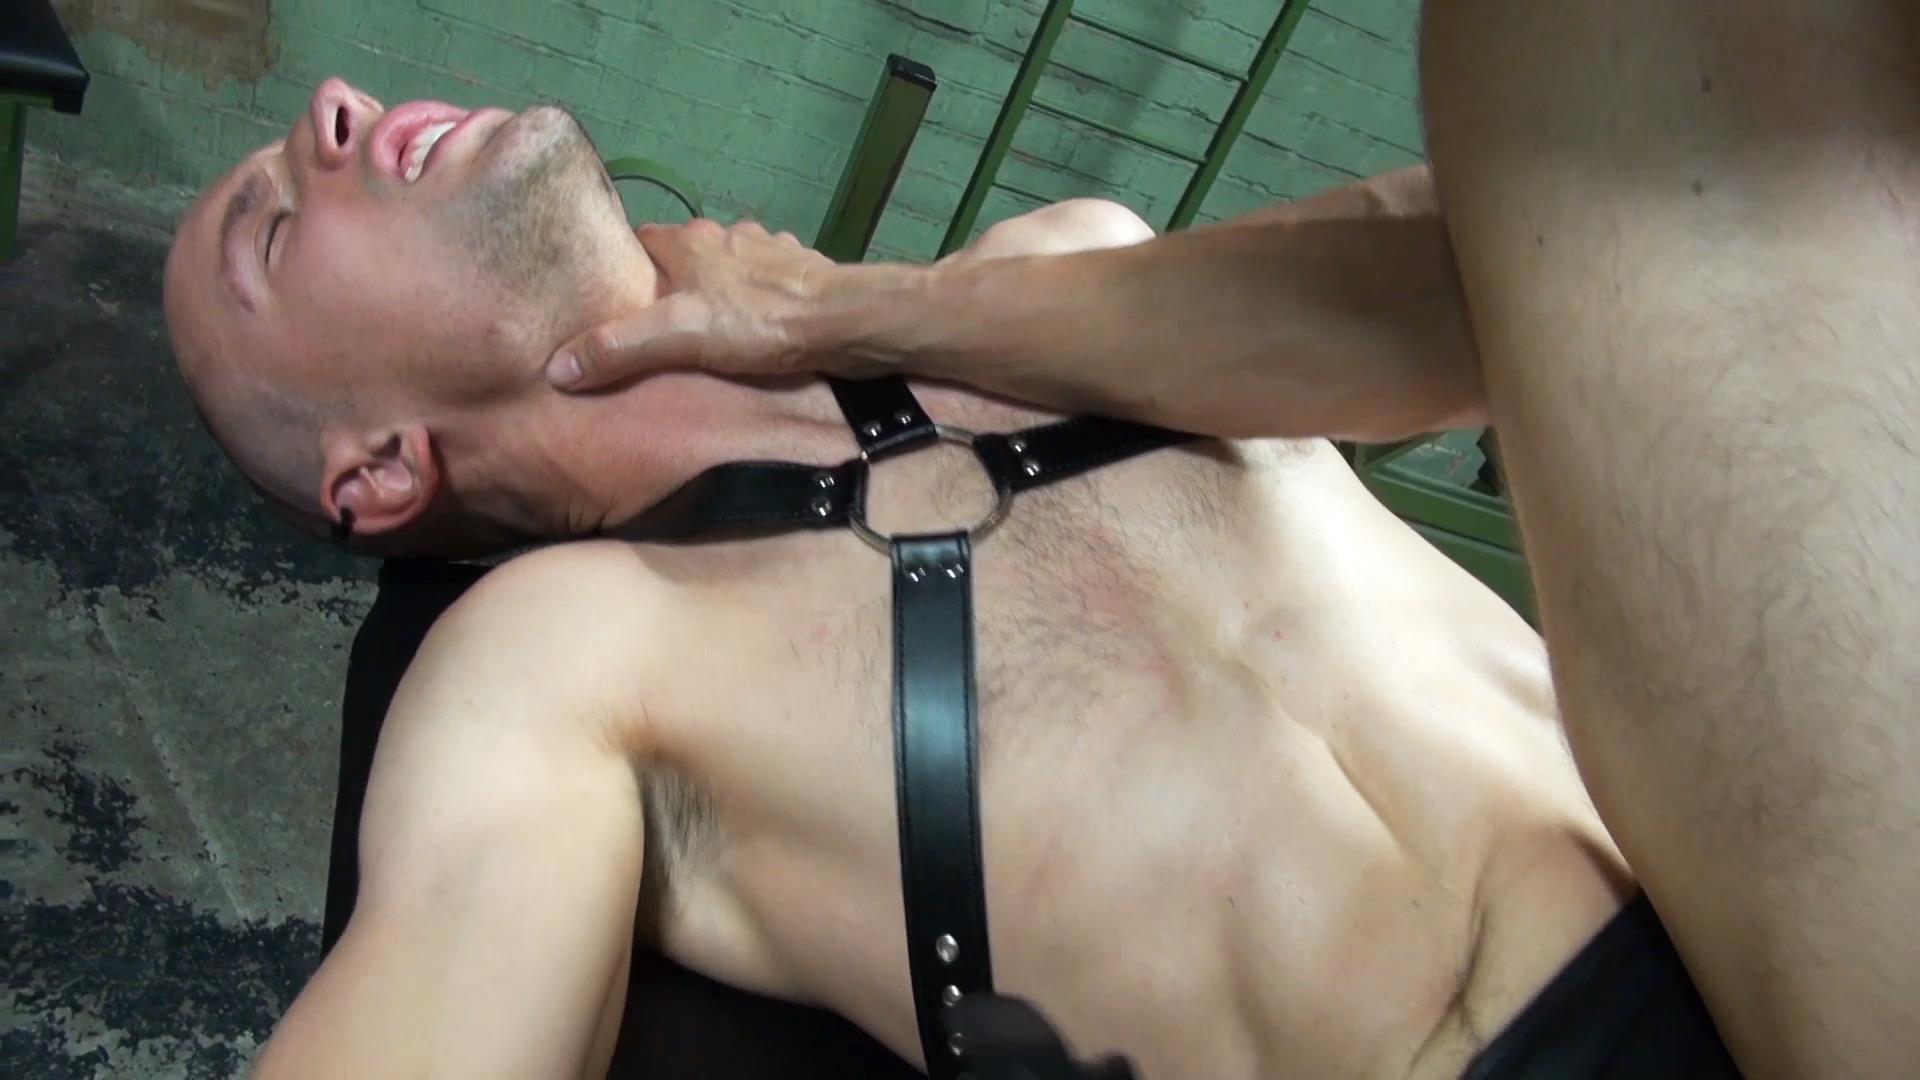 Dark Alley XT Anakonda and Jason Domino Bareback Big Uncut Cock Amateur Gay Porn 1 Breeding A Slave Hole With A Big Uncut Cock At The Bathhouse